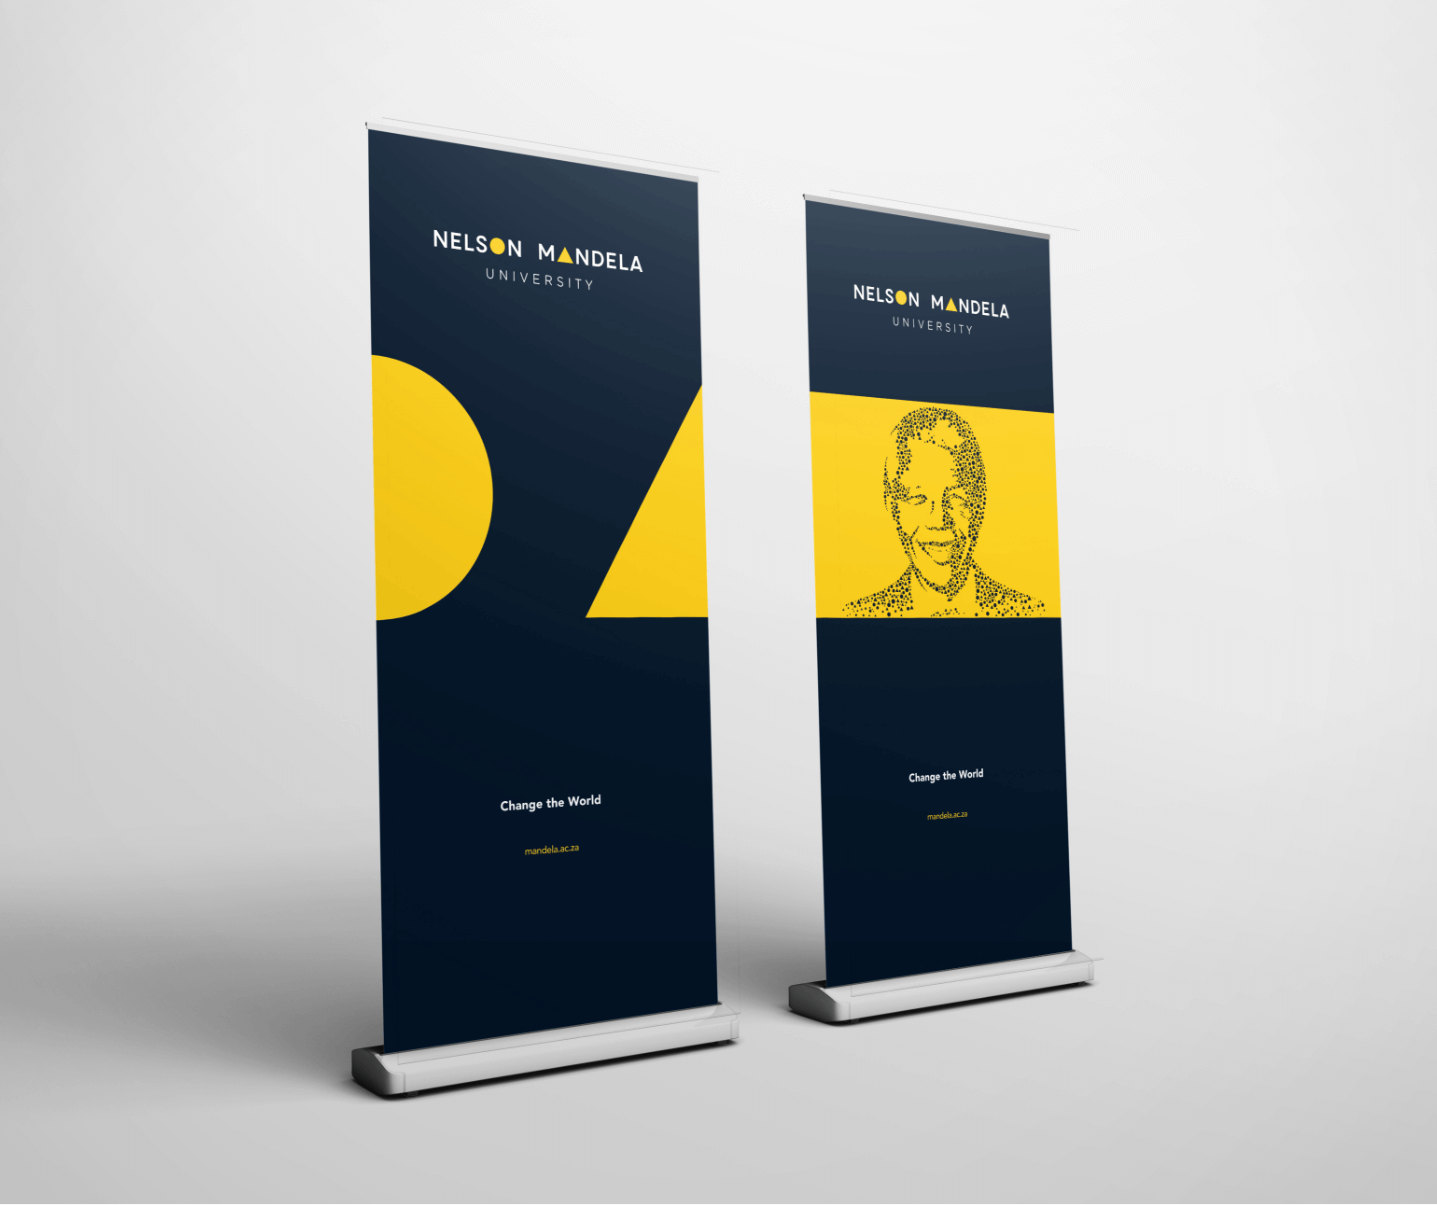 Creative Caterpillar client Nelson Mandela University pull up banners application.